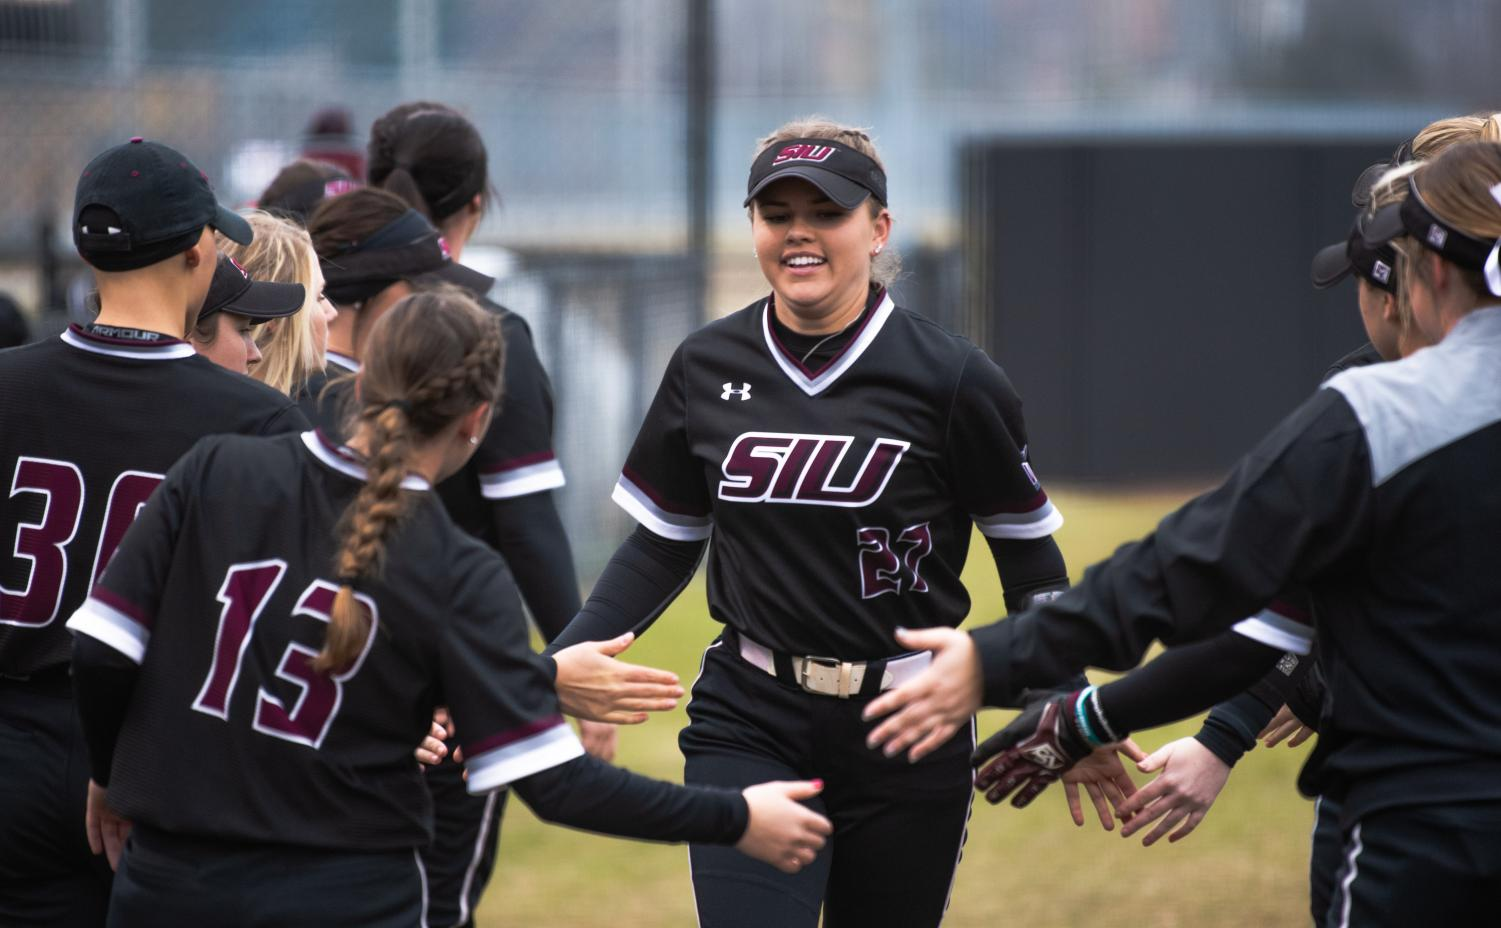 Saluki senior pitcher Brianna Jones is introduced to the field on Friday, Feb. 22, 2019 during the Salukis 1-0 win against the Creighton Jays at Charlotte West Stadium.